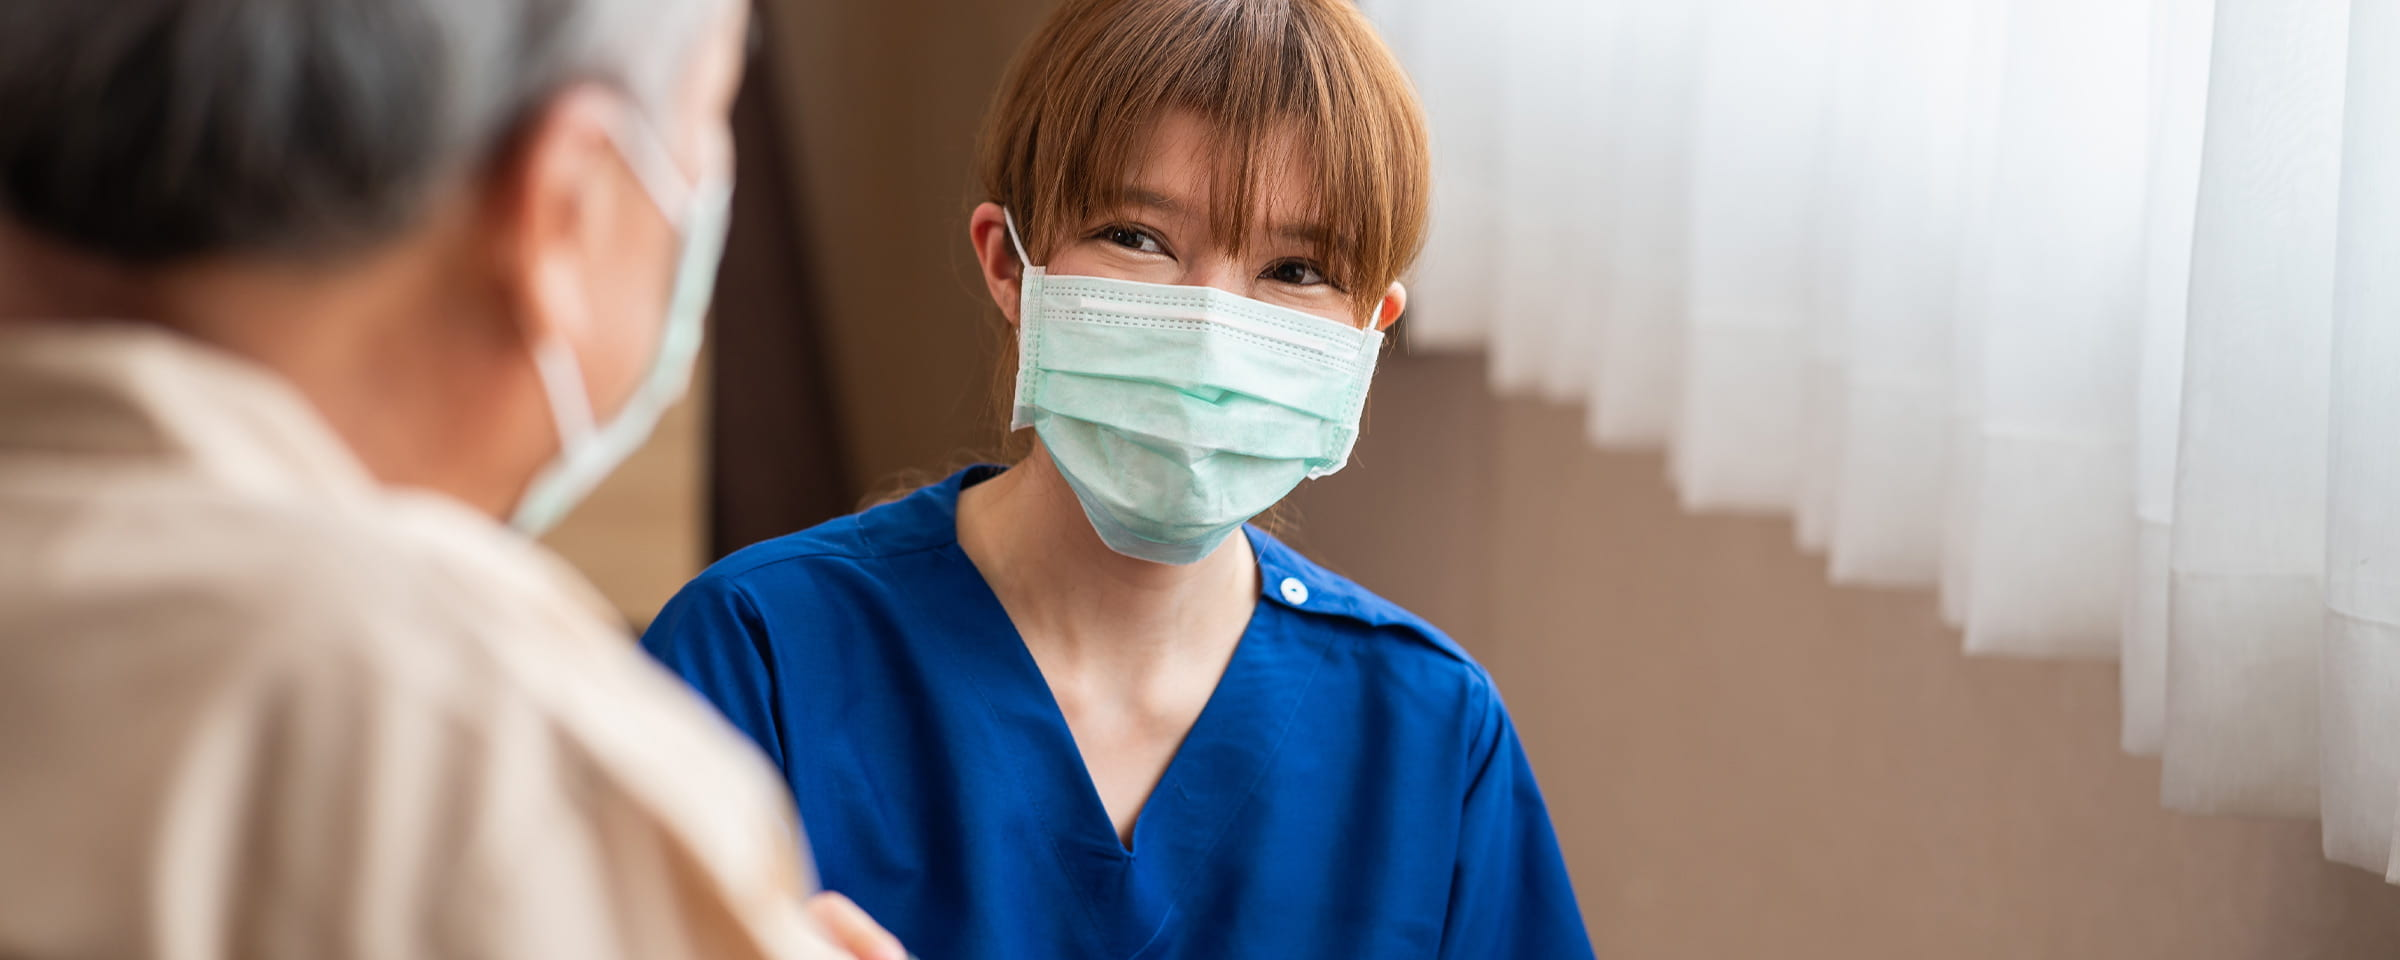 Health-care worker